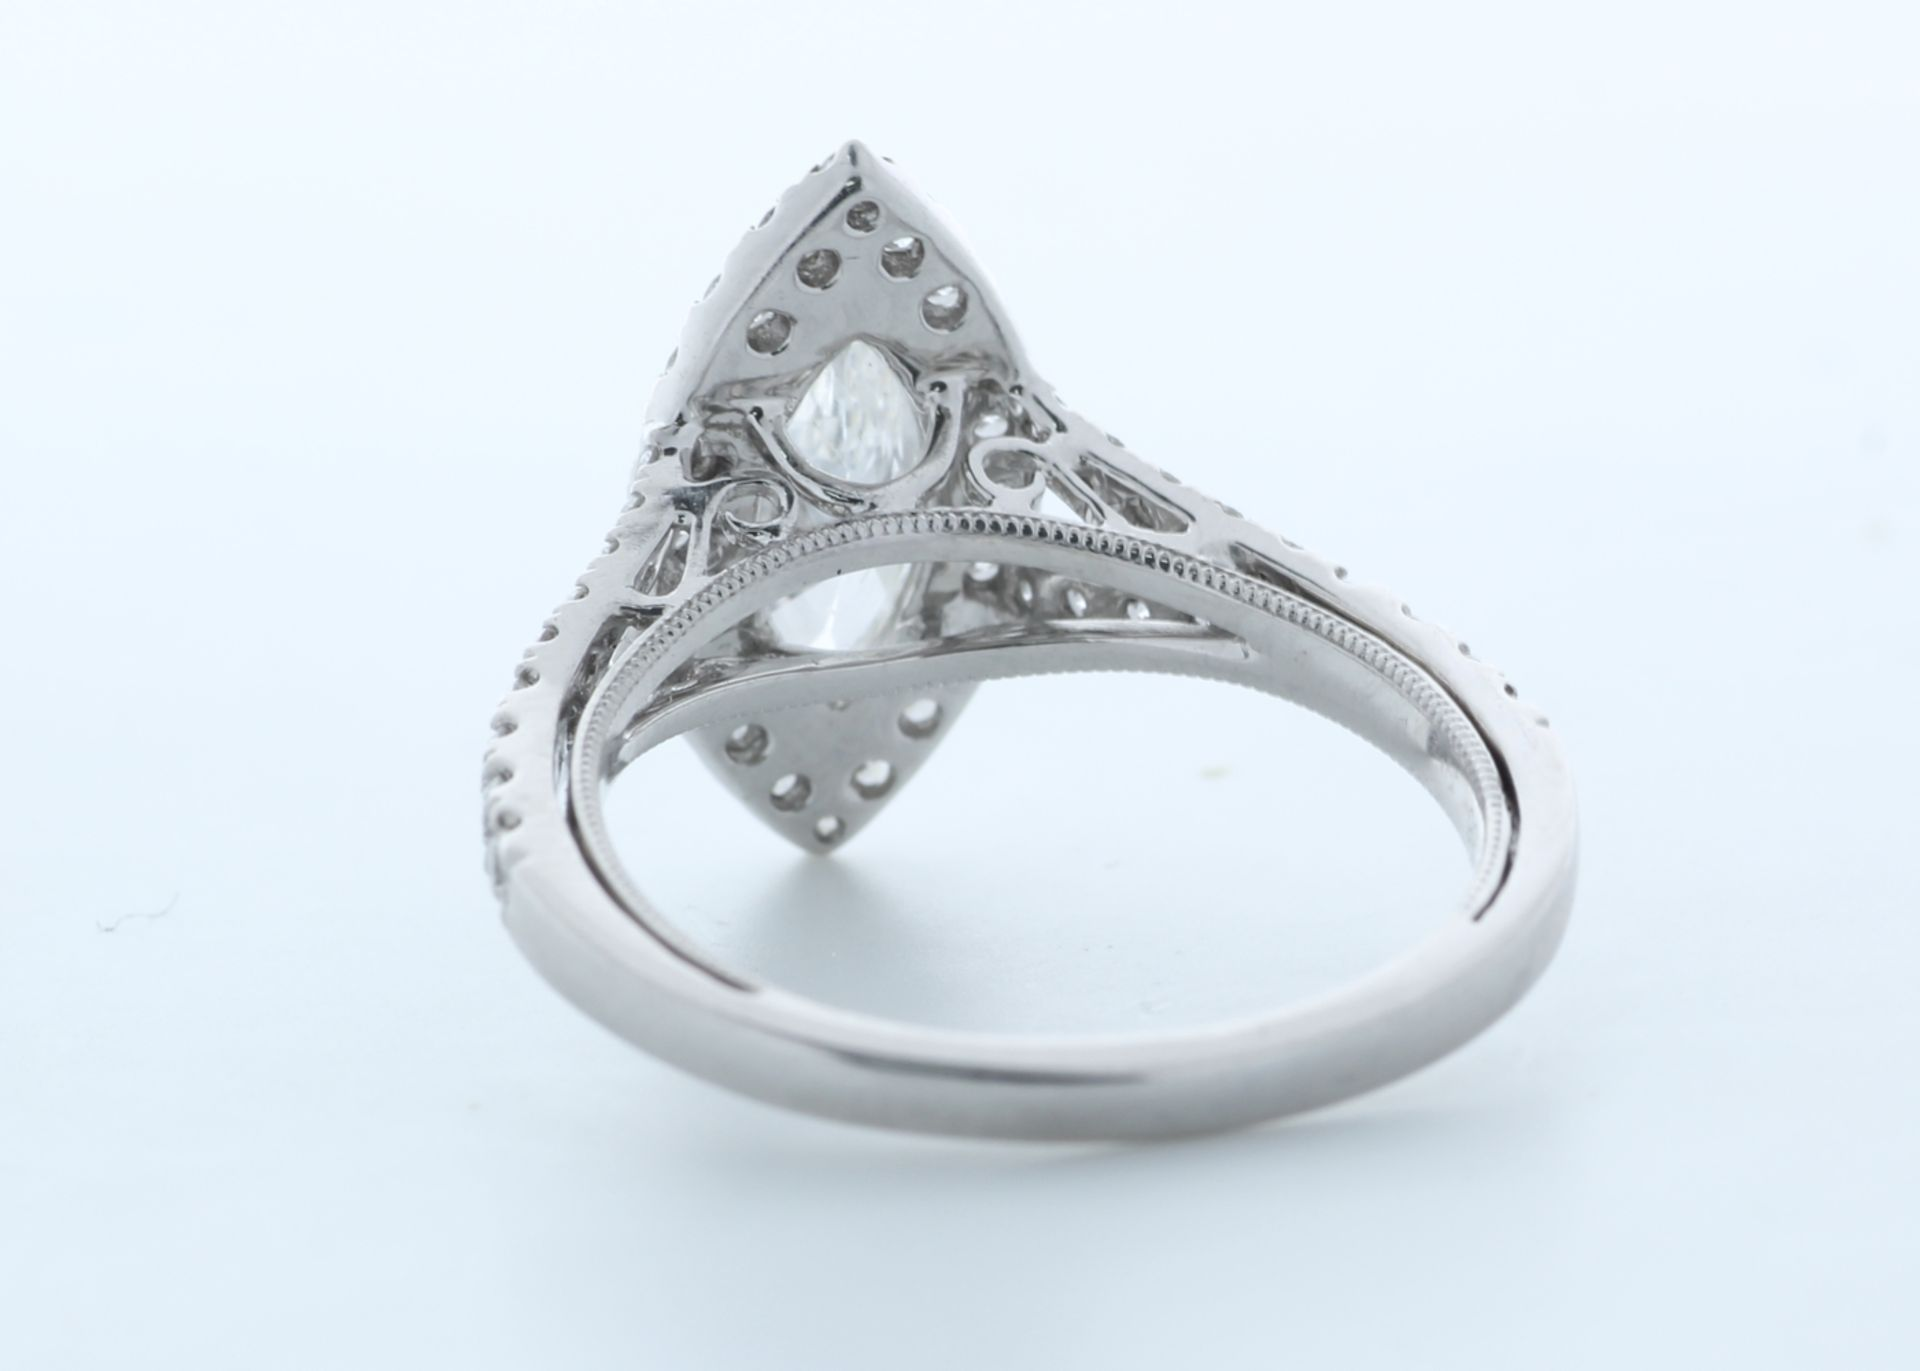 18ct White Gold Single Stone With Halo Setting Ring 1.56 (0.90) Carats - Valued by IDI £16,000. - Image 3 of 5